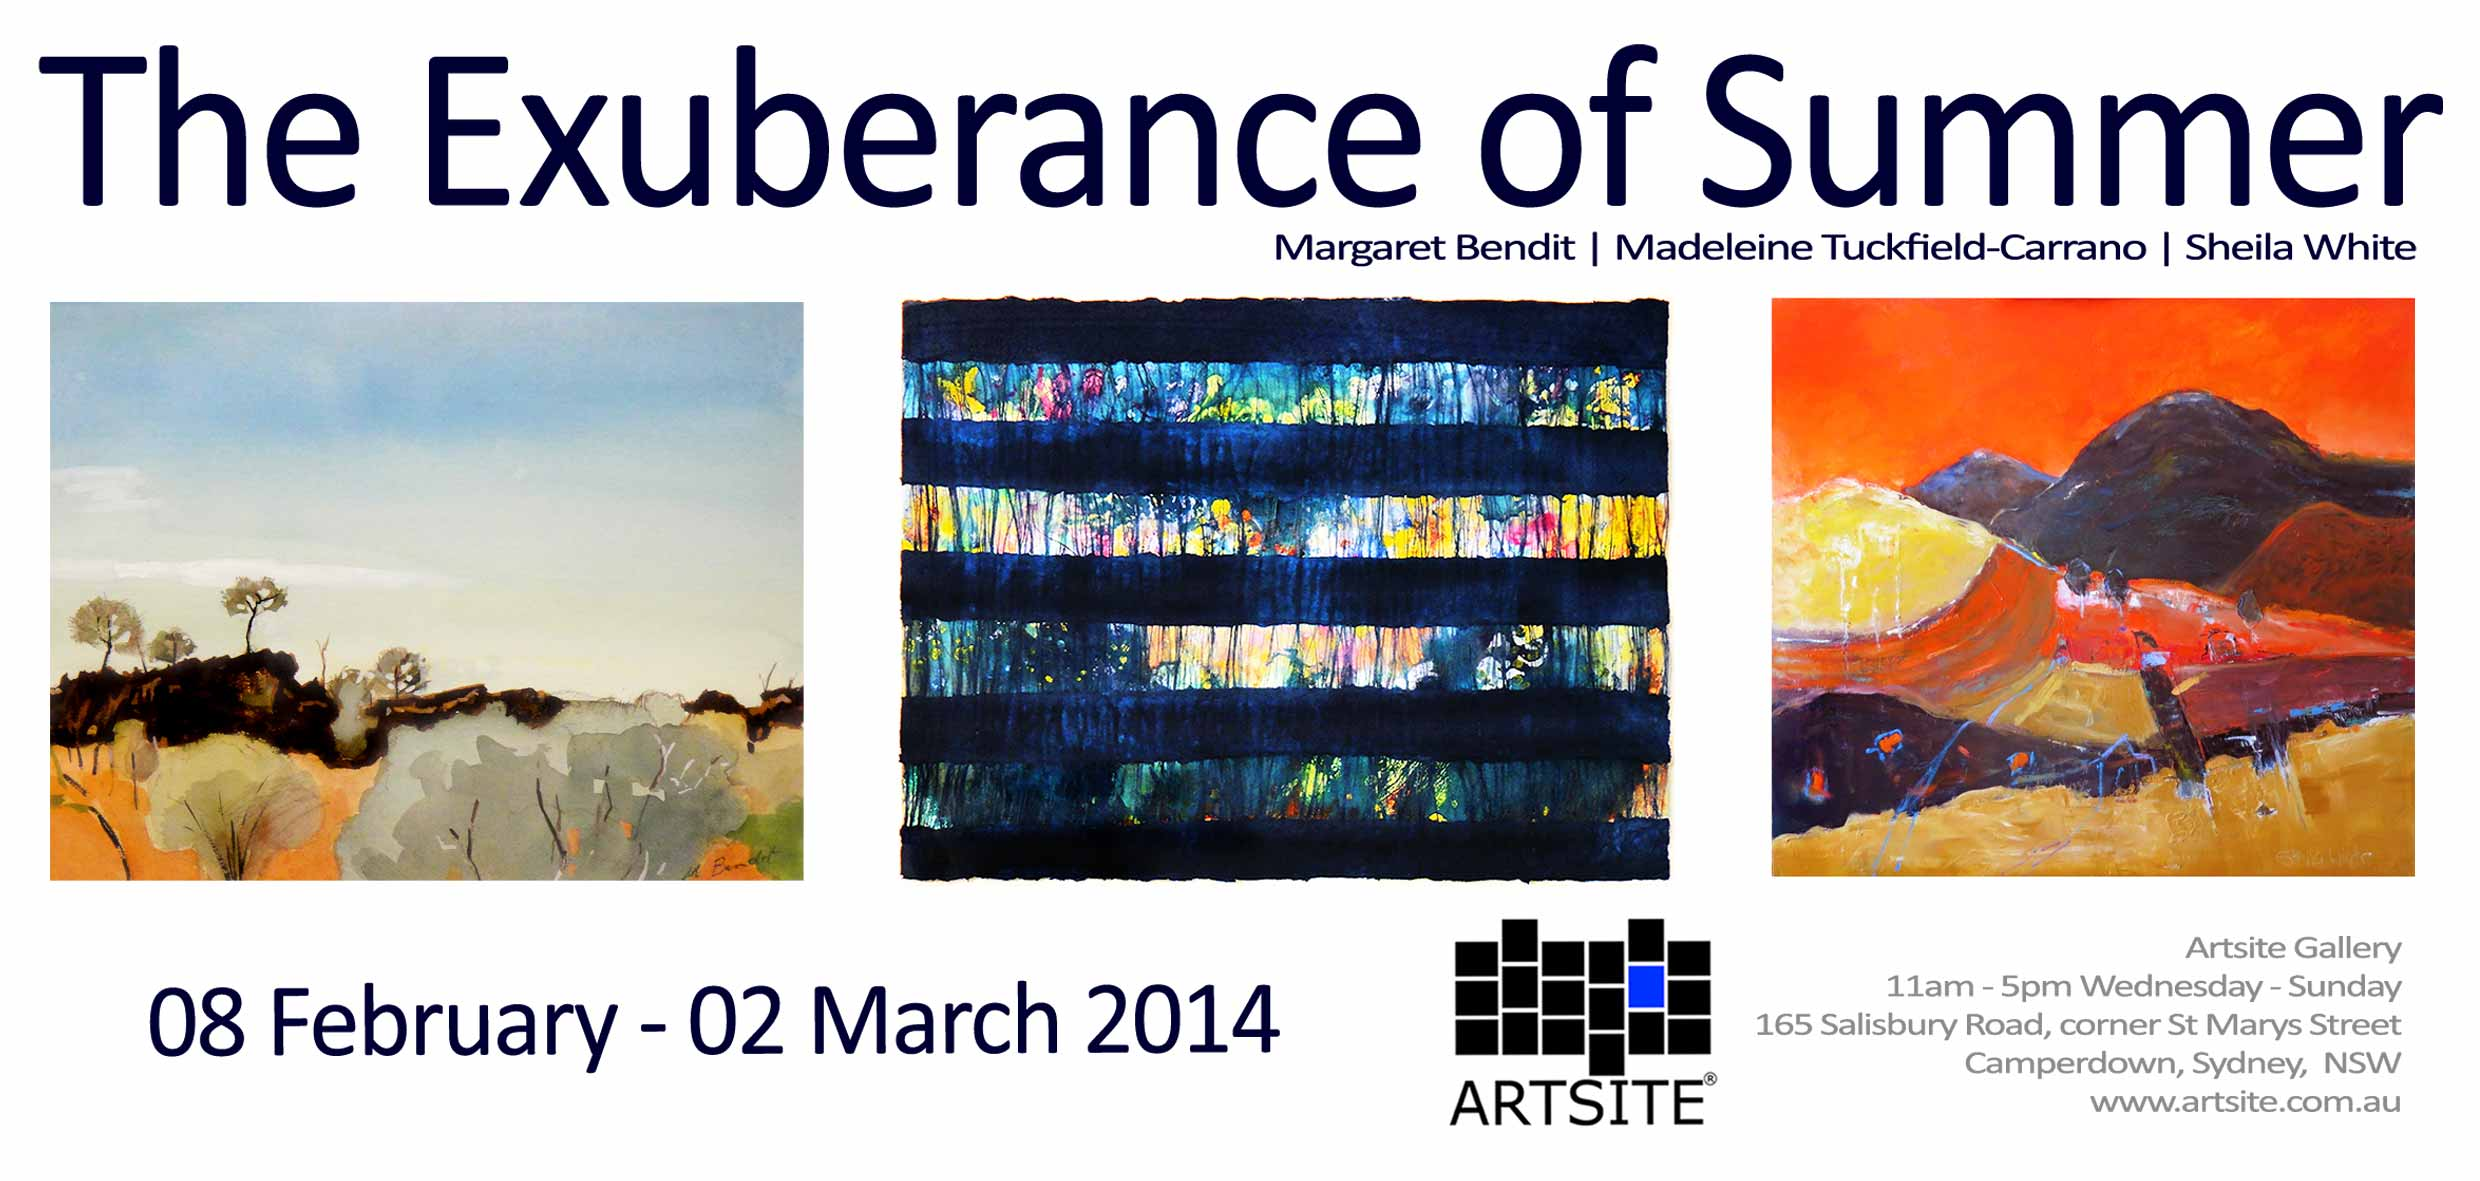 View Exhibition at Artsite Gallery. 08 February - 02 March 2014: he Exuberance of Summer: Margaret Bendit | Madeleine Tuckfield-Carrano | Sheila White